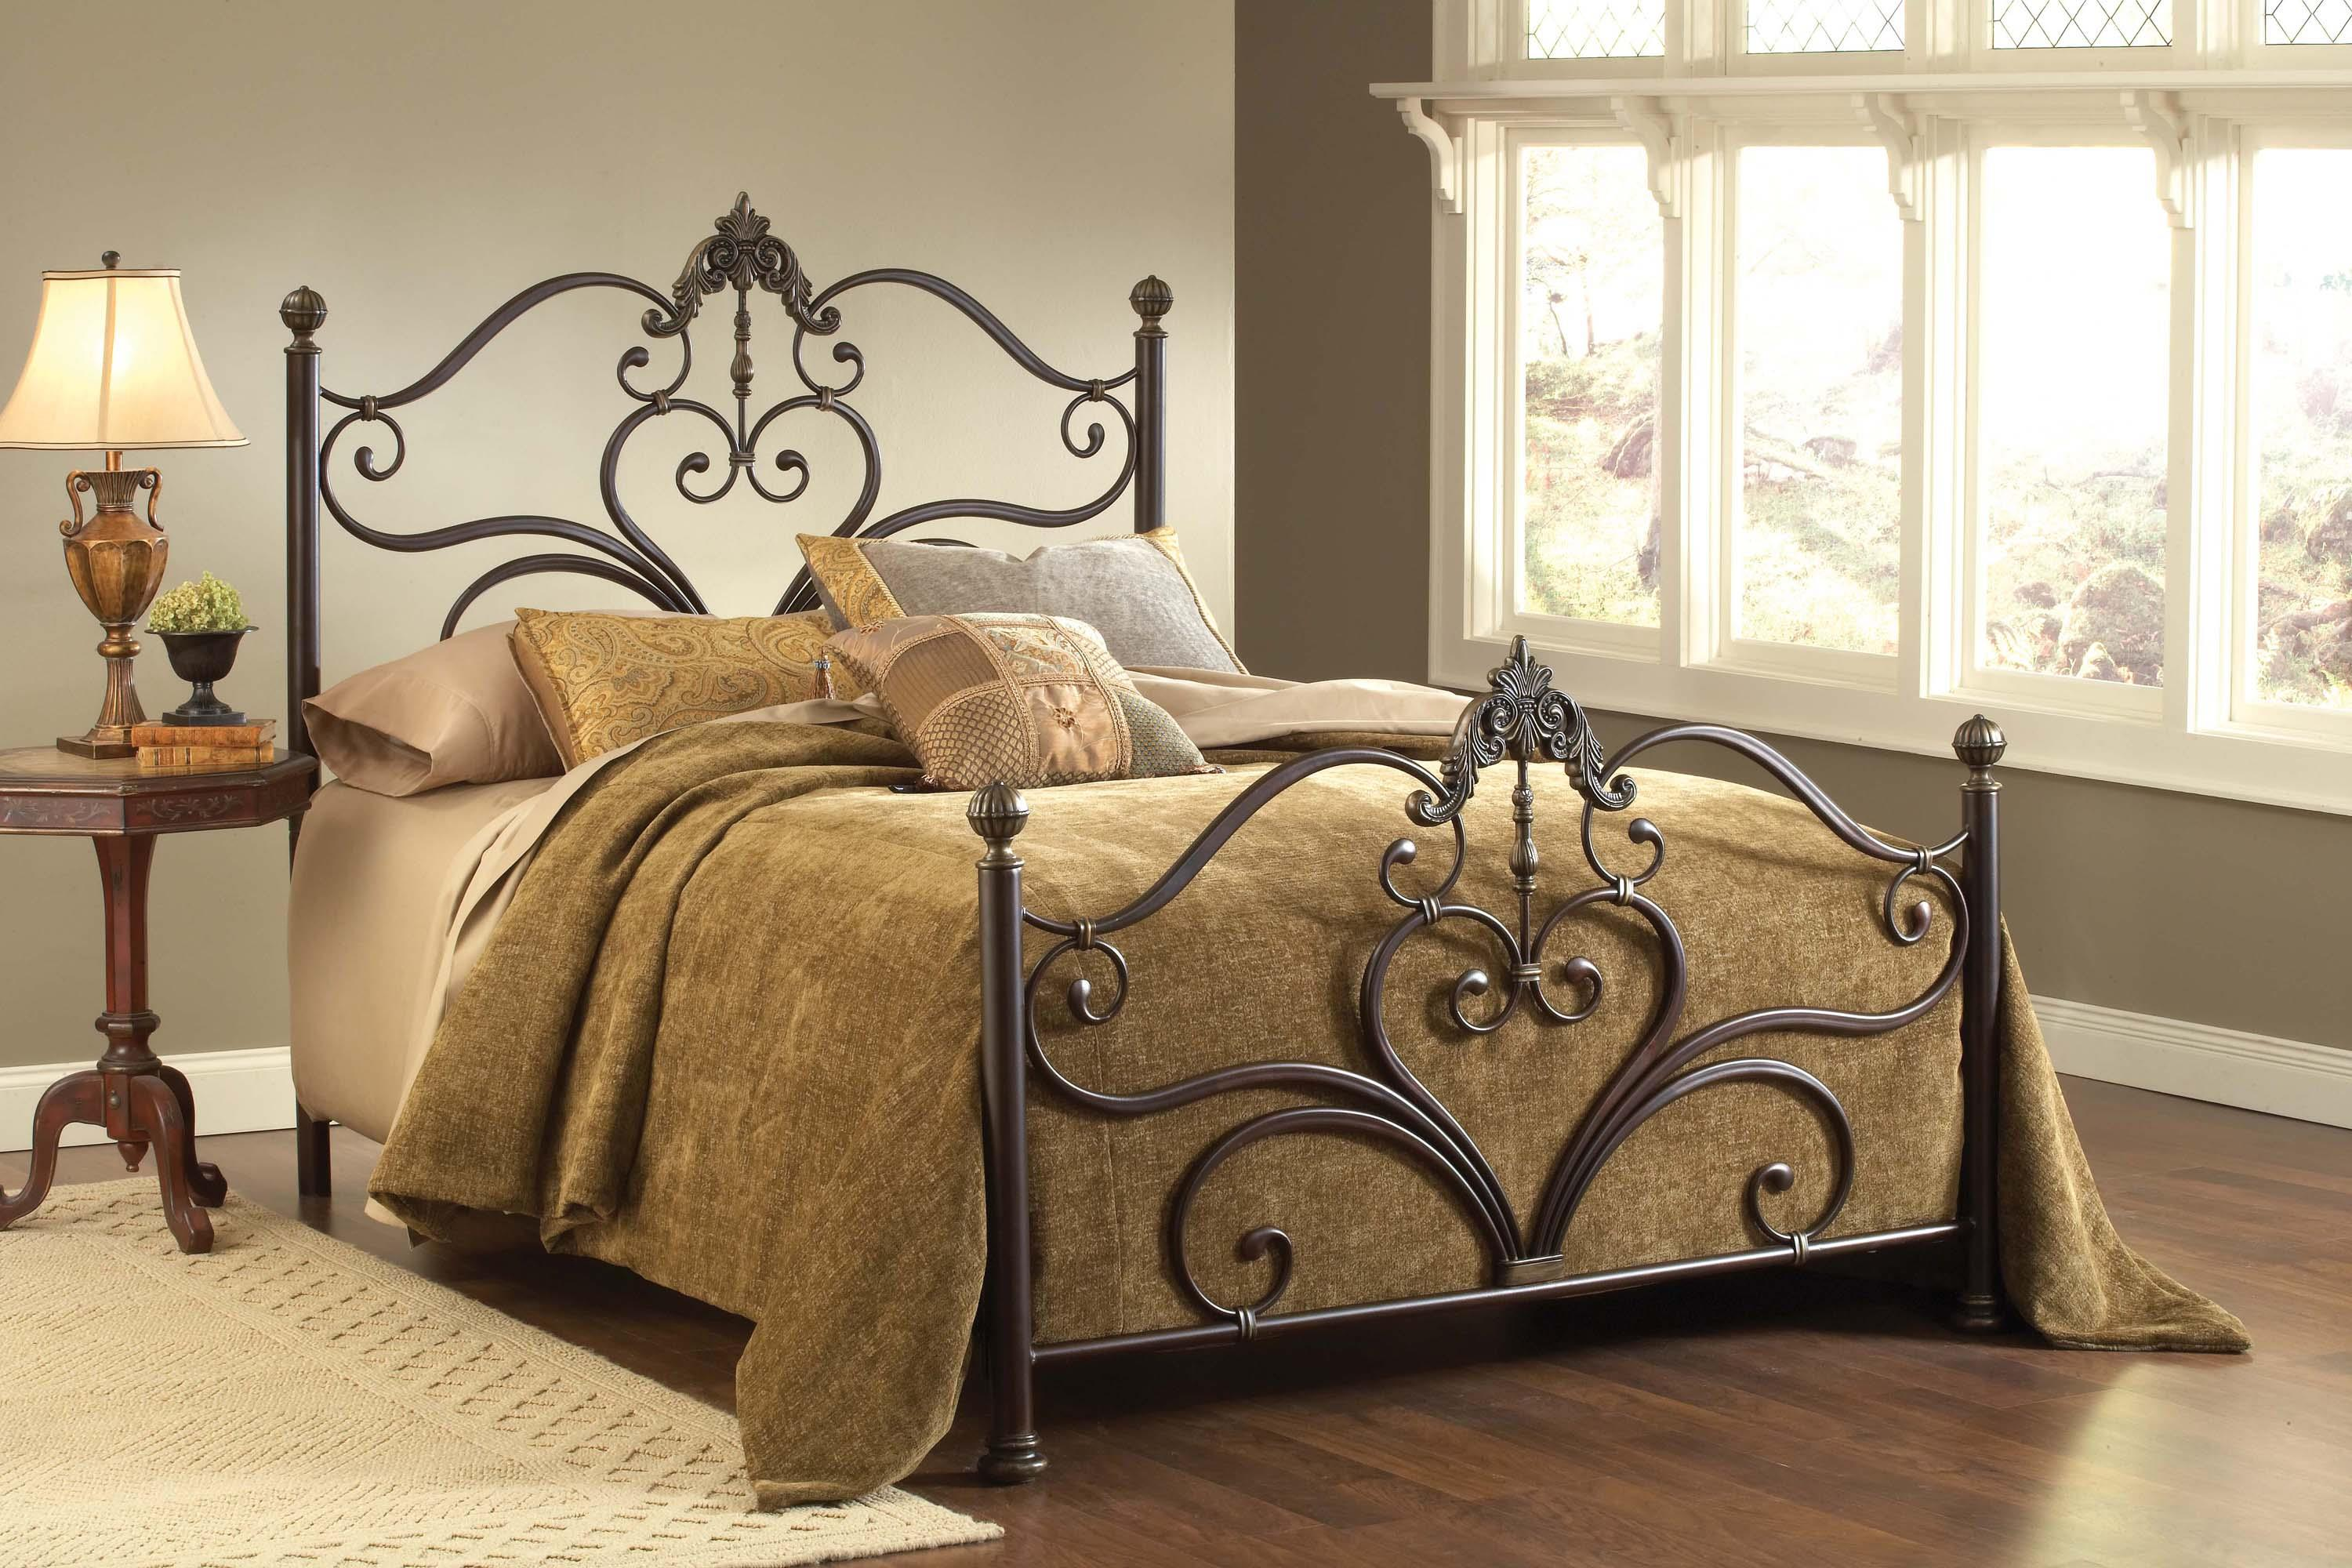 Hillsdale Metal Beds Newton Queen Bed Set with Scrollwork - Item Number: 1756BQR